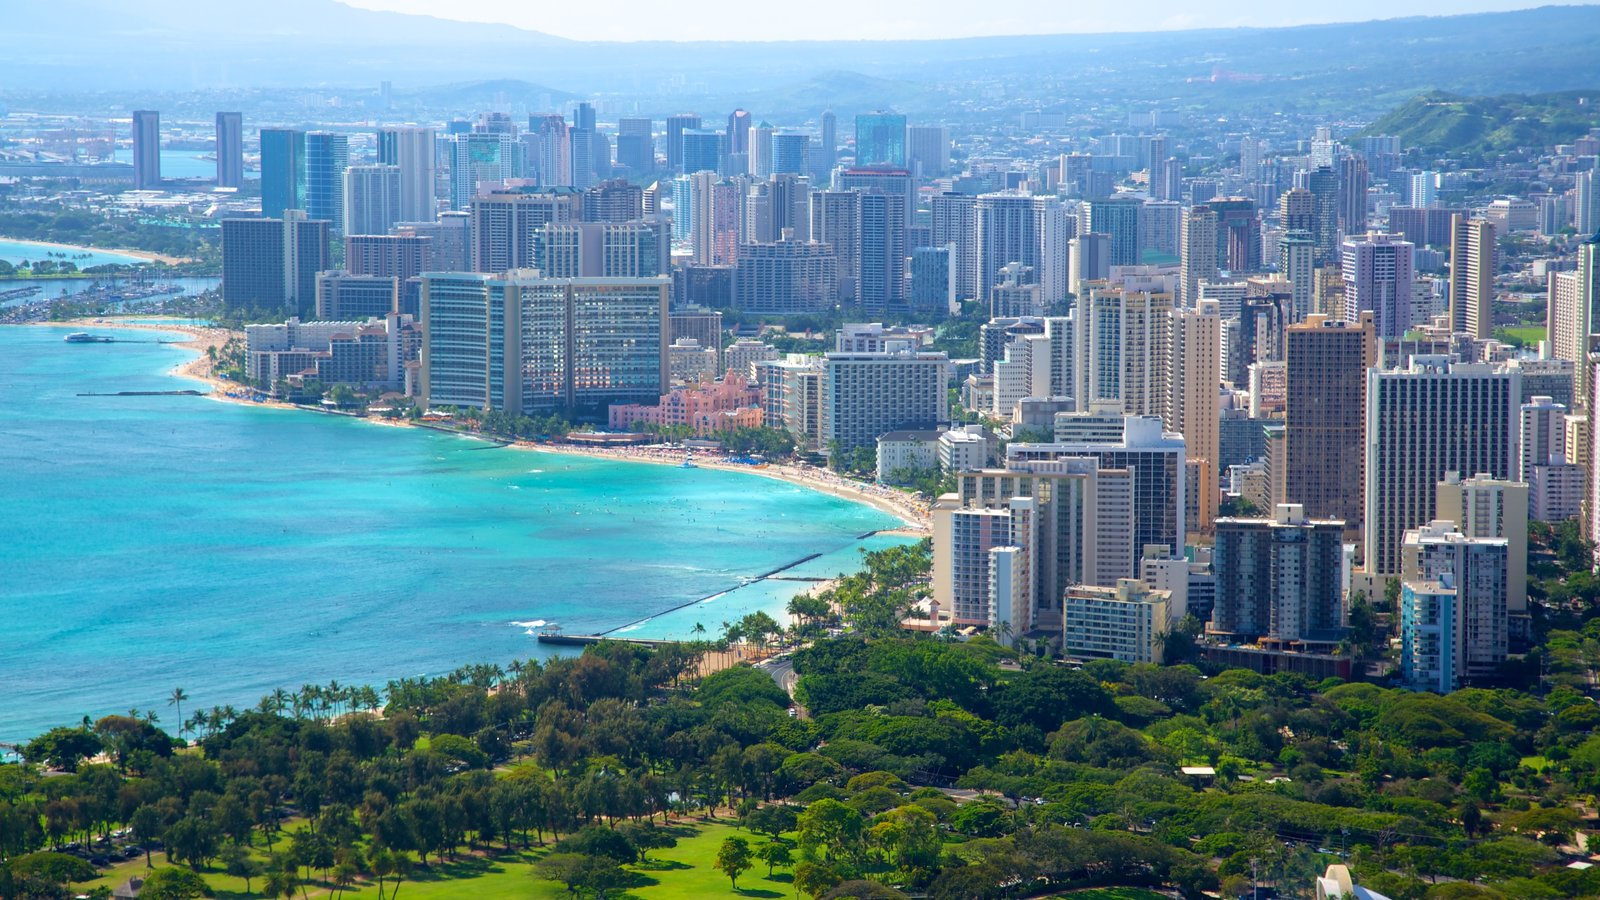 Honolulu which includes tropical scenes, a high rise building and a city